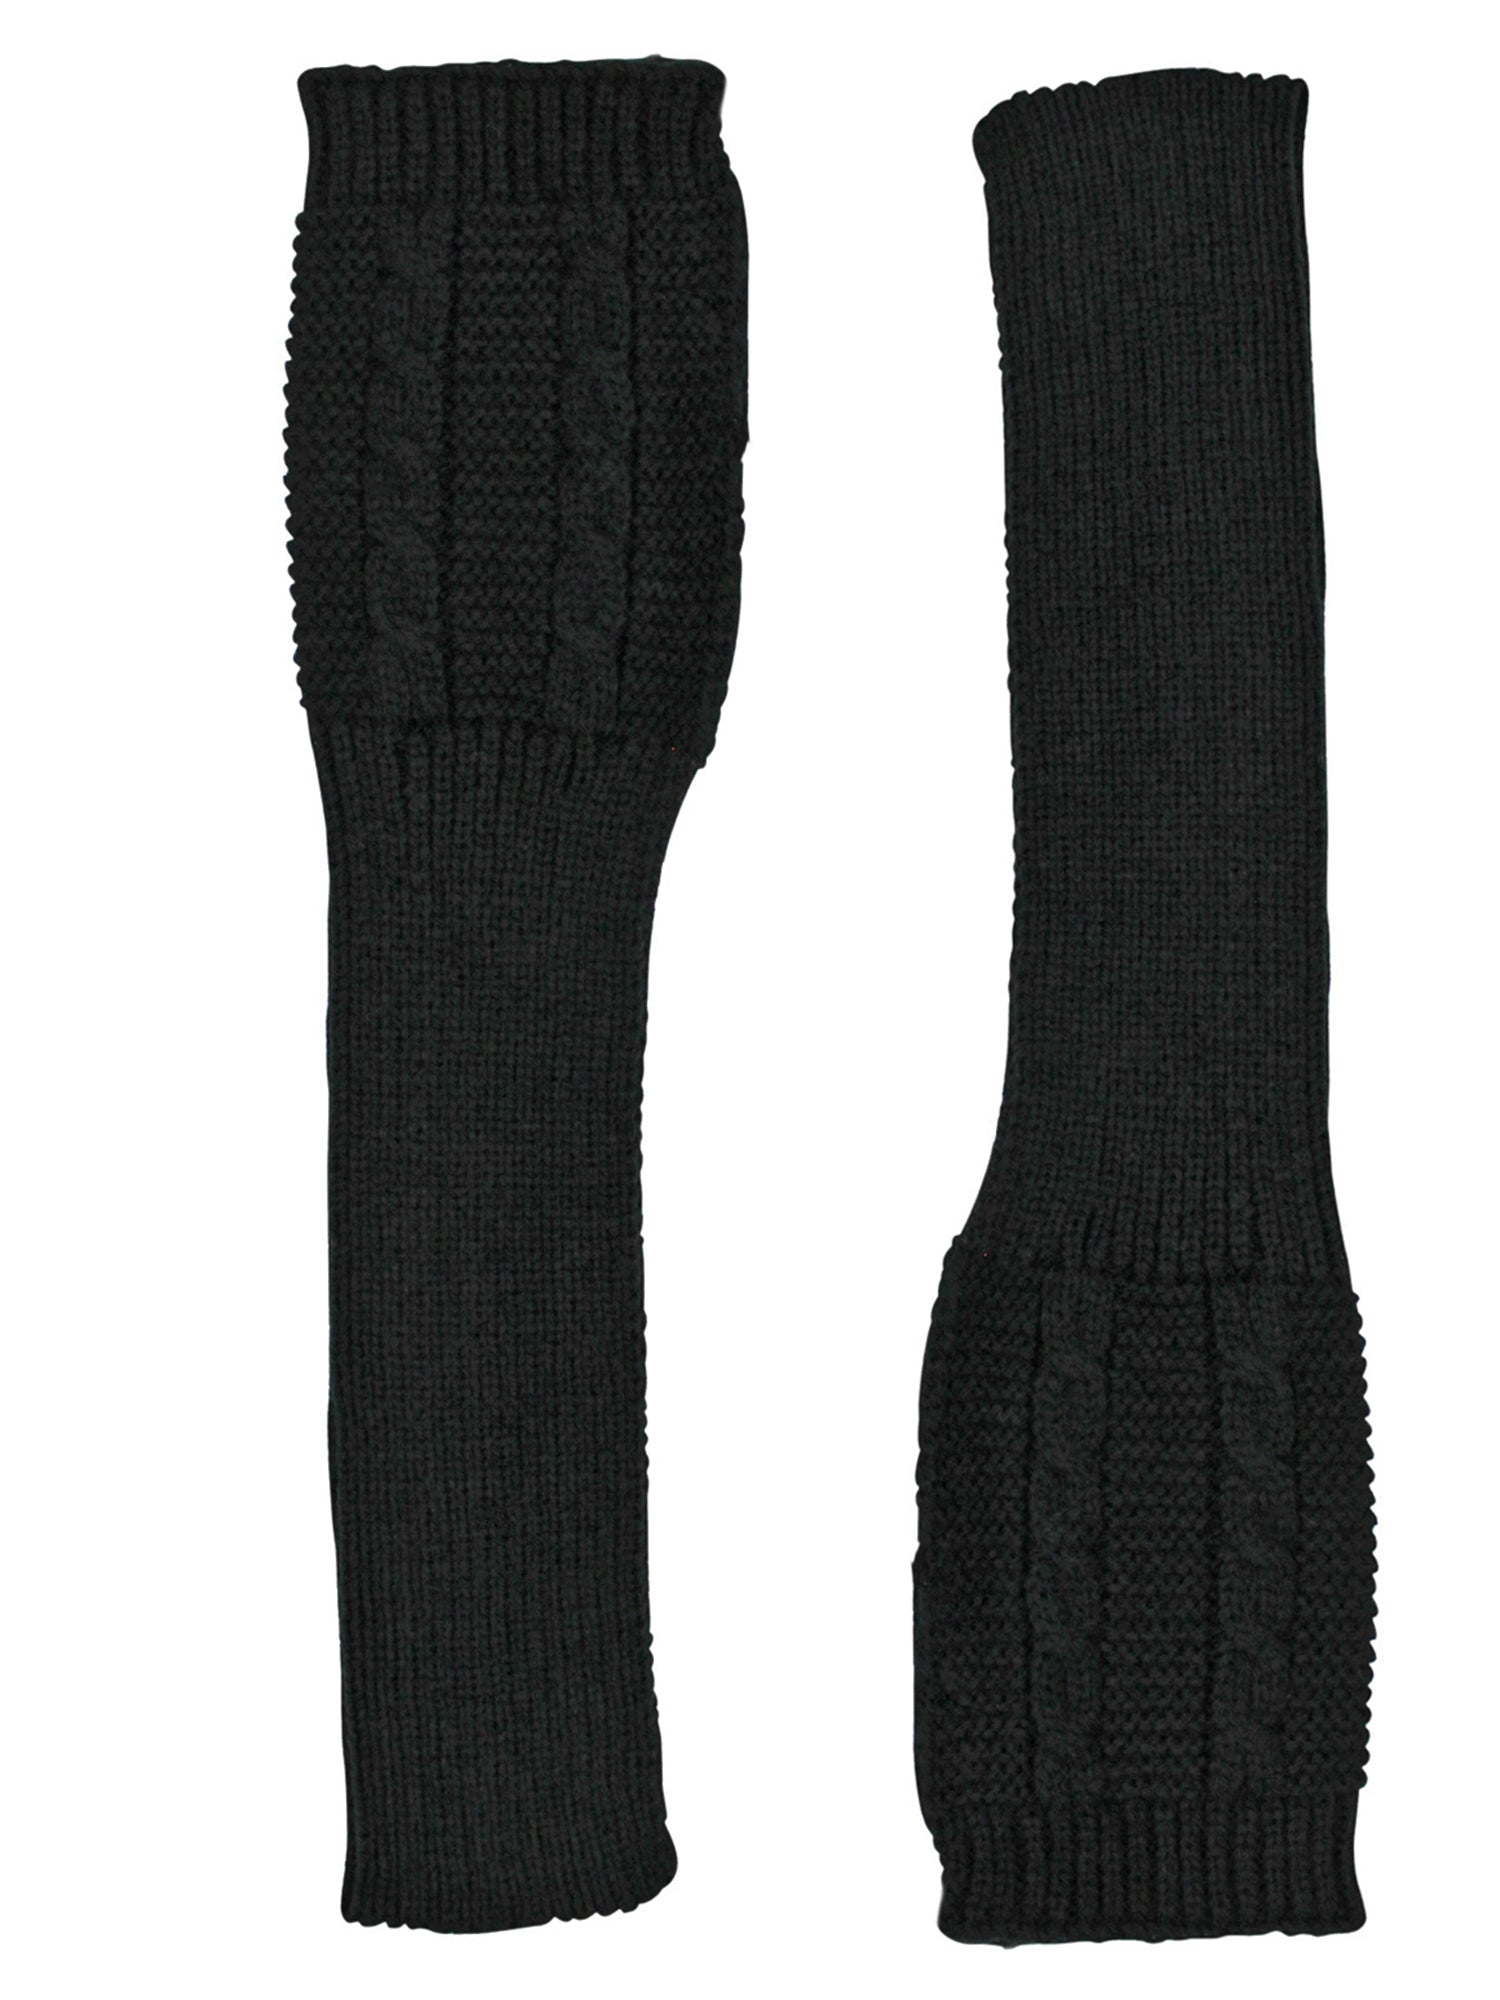 Black Long Cable Knit Fingerless Gloves